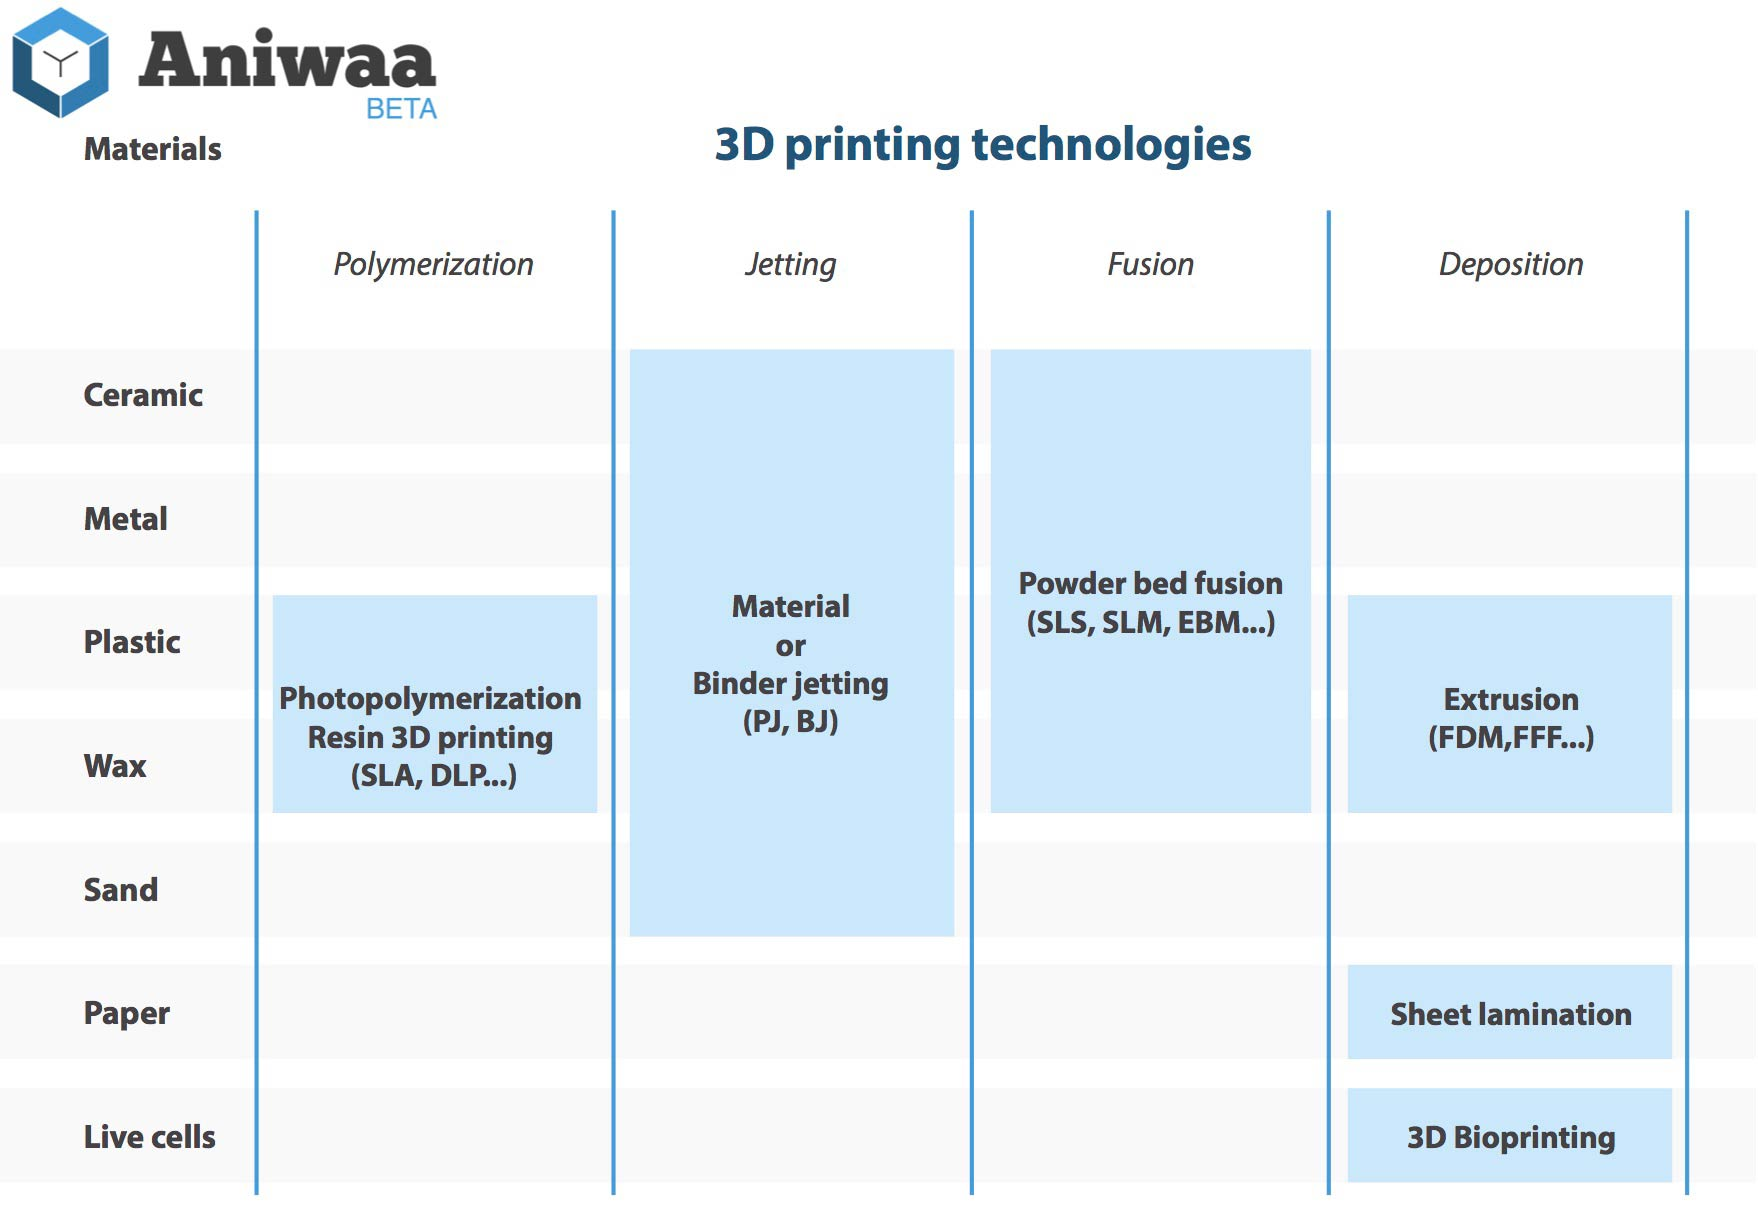 Infographic materials and 3D printing technologies mapping.